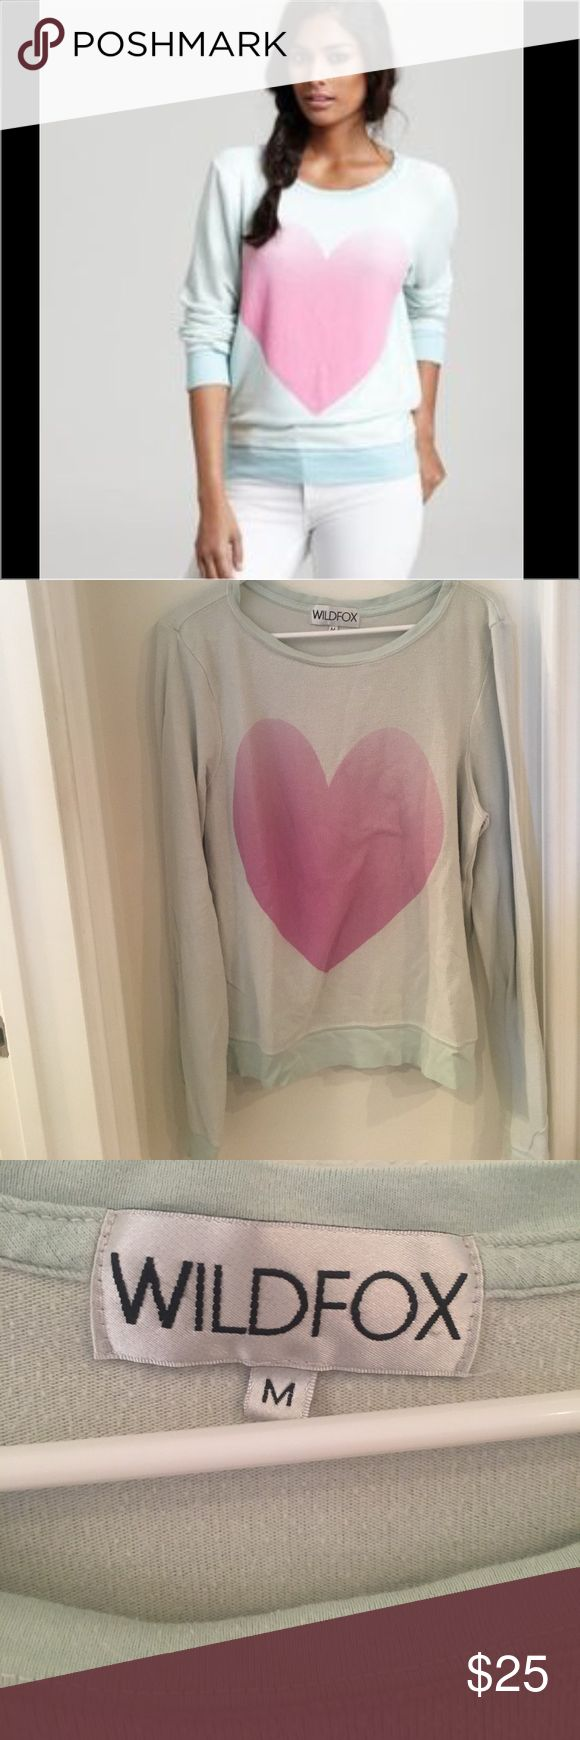 Wildfox Mint Green Big Heart Sweater Size Medium Mint Green Wildfox Big Heart Sweater. Slightly distressed pulled look as shown in photos. Light, soft fabric. Wildfox Sweaters Crew & Scoop Necks